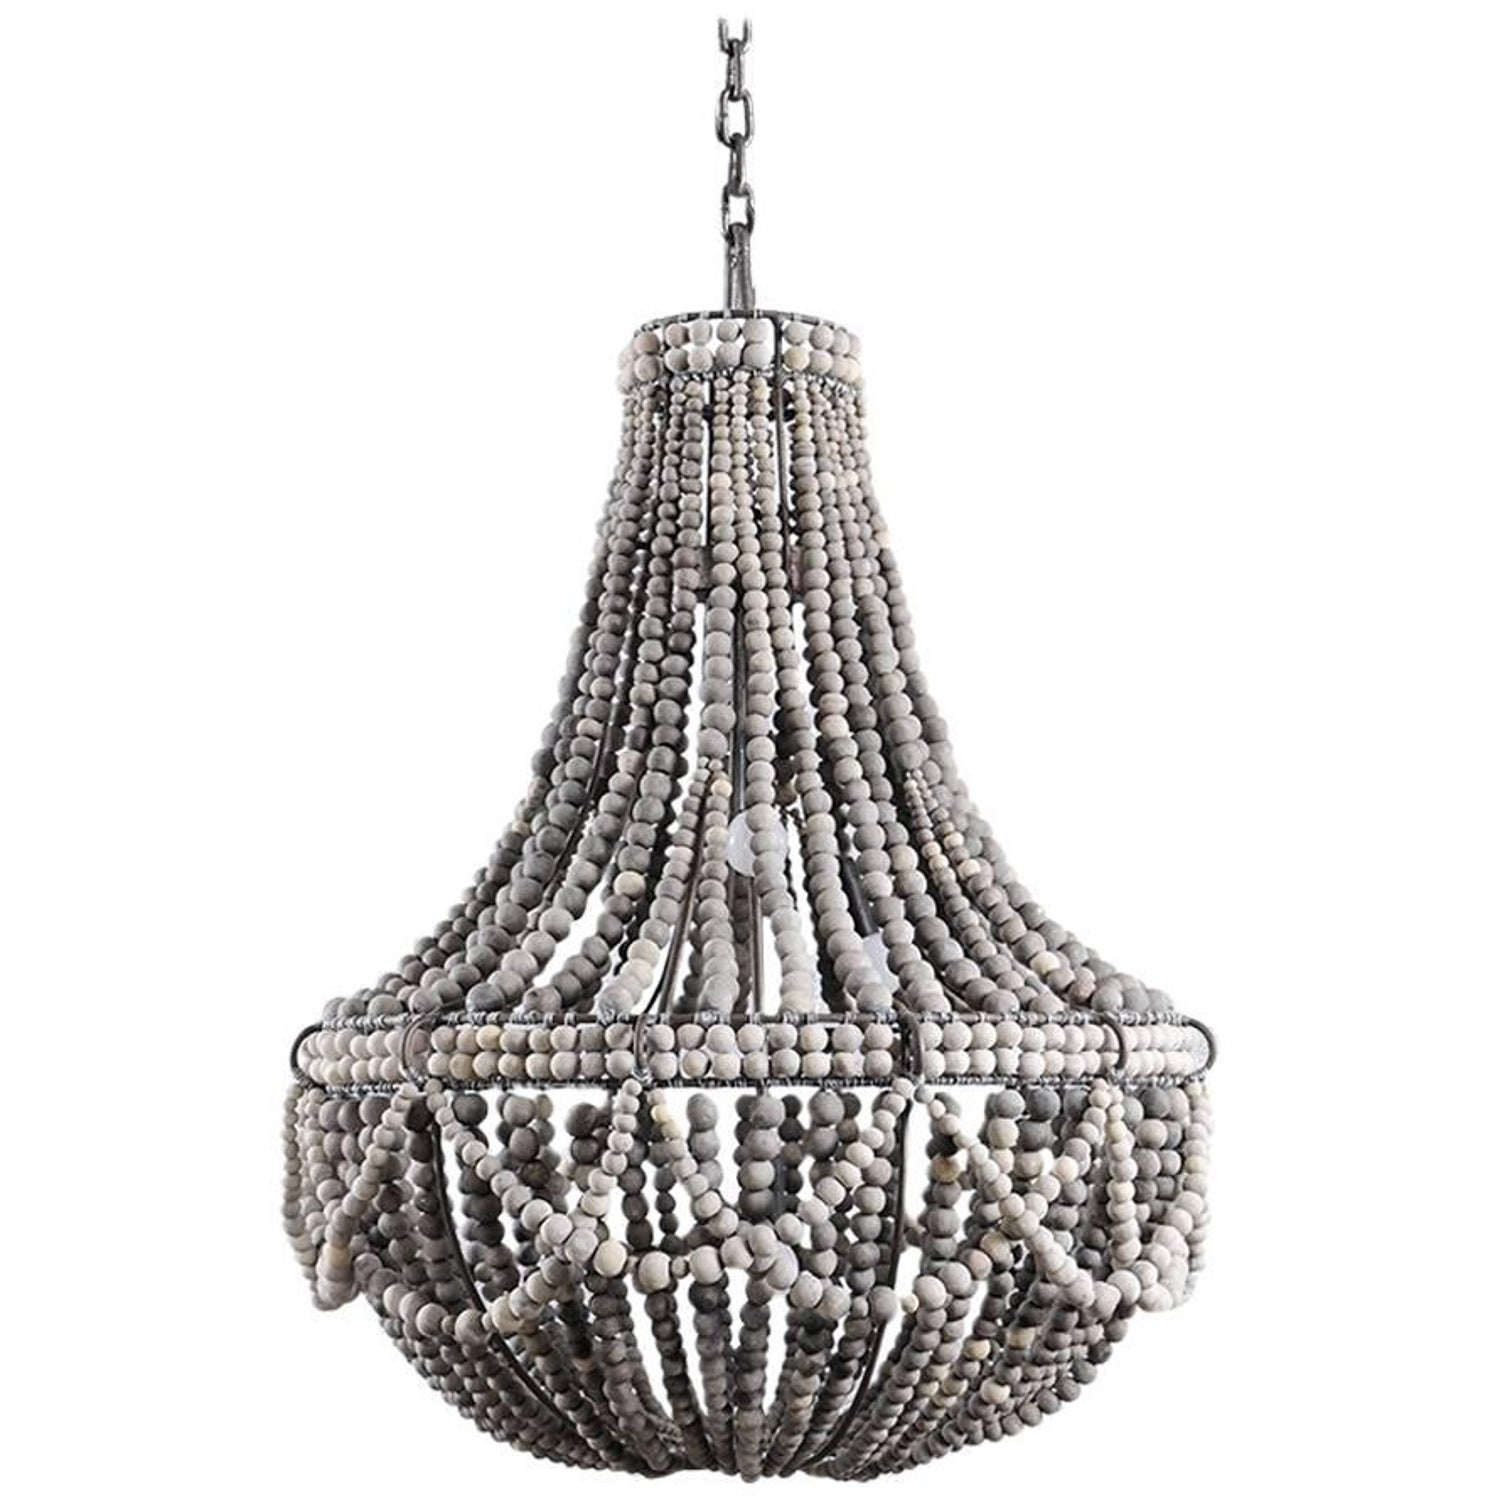 brass light white beaded amoret bead today shipping adjustable safavieh overstock home chandelier inch lighting free product garden